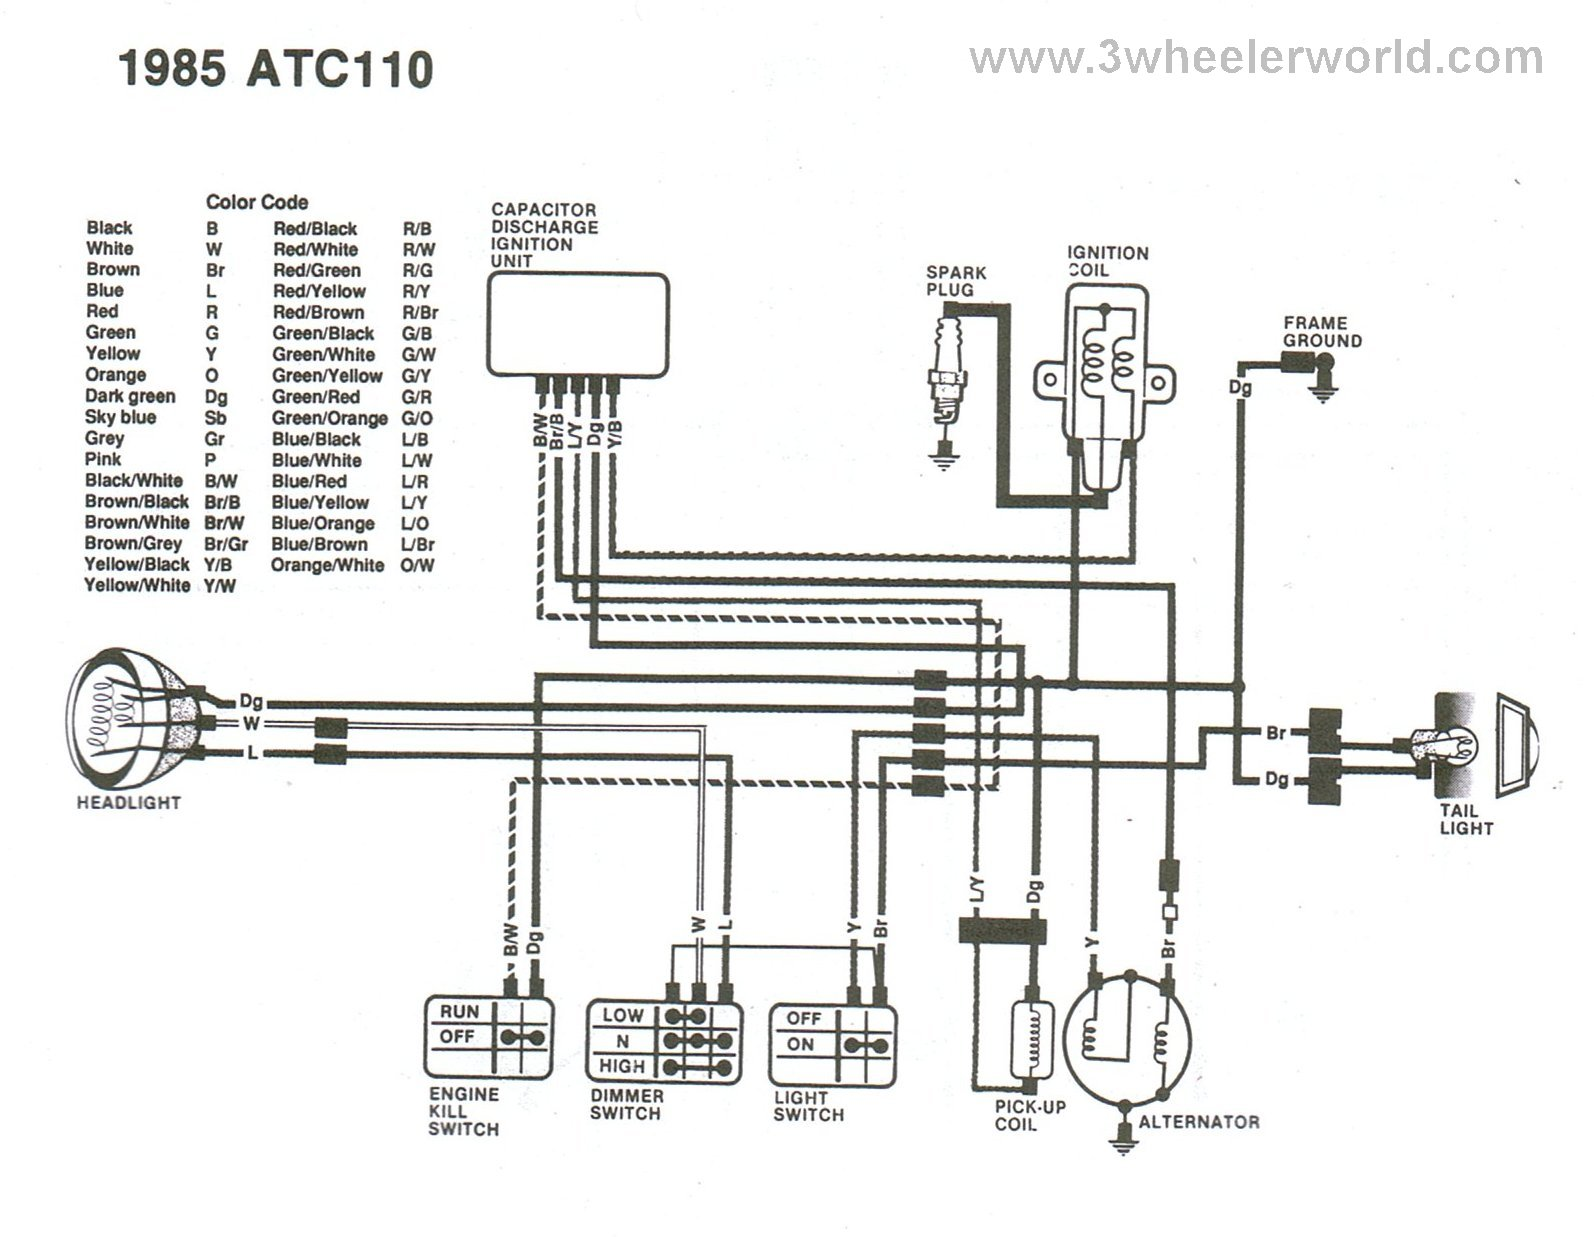 115740 Circuit Diagrams Indian Motorcycles Scooters additionally Repair And Service Manuals likewise 44 45 as well ST1300 c additionally Car Steering System. on electric scooter wiring schematic